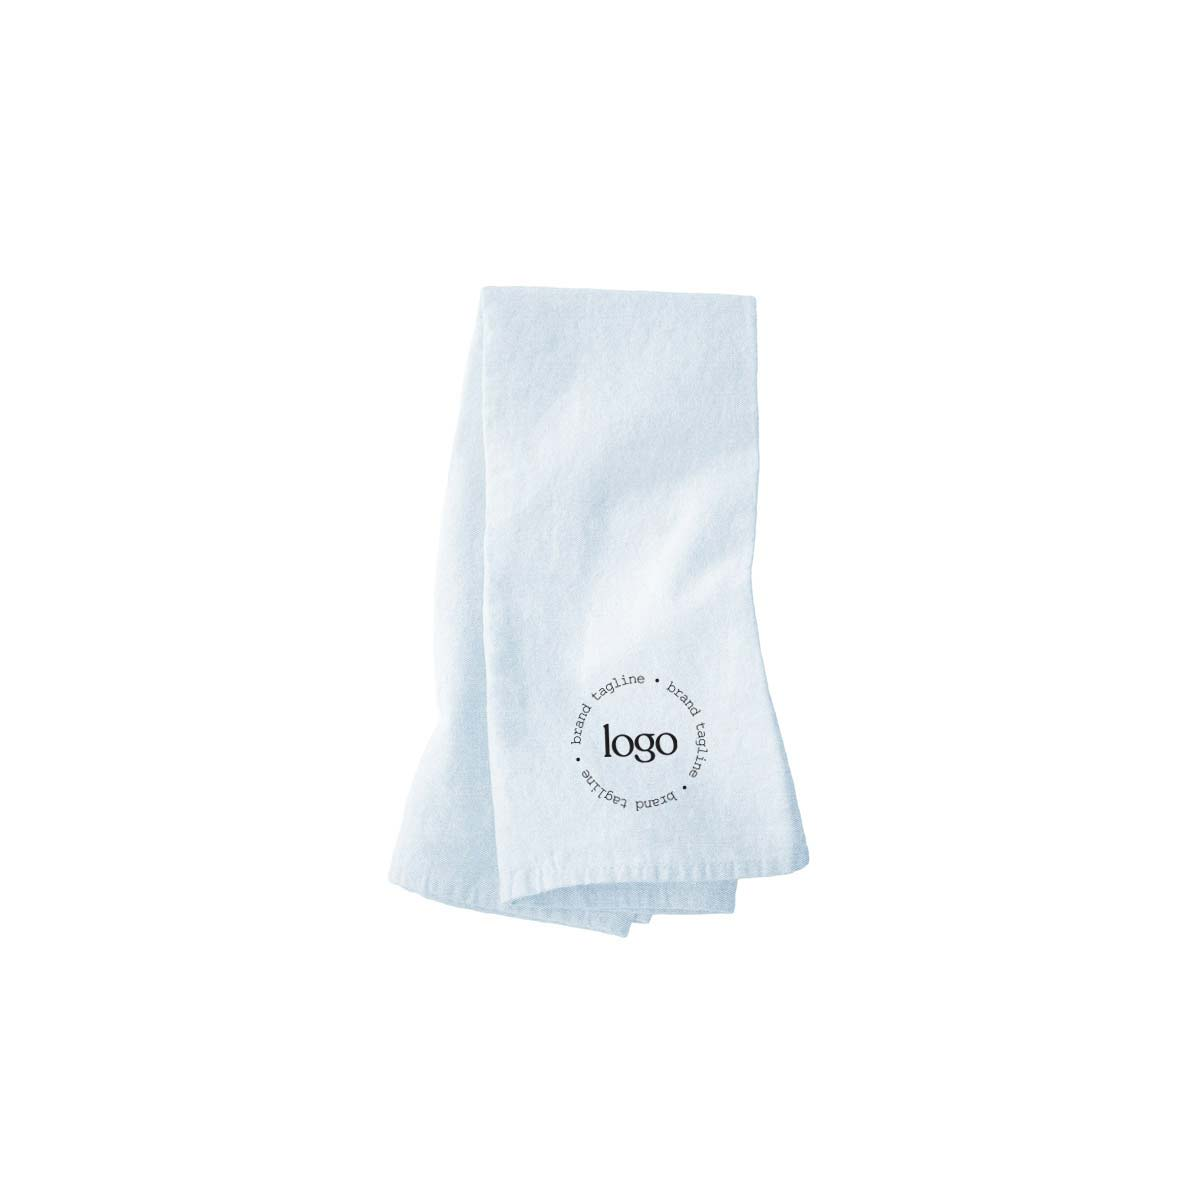 303145 premium tipsy dish towel one color imprint one location